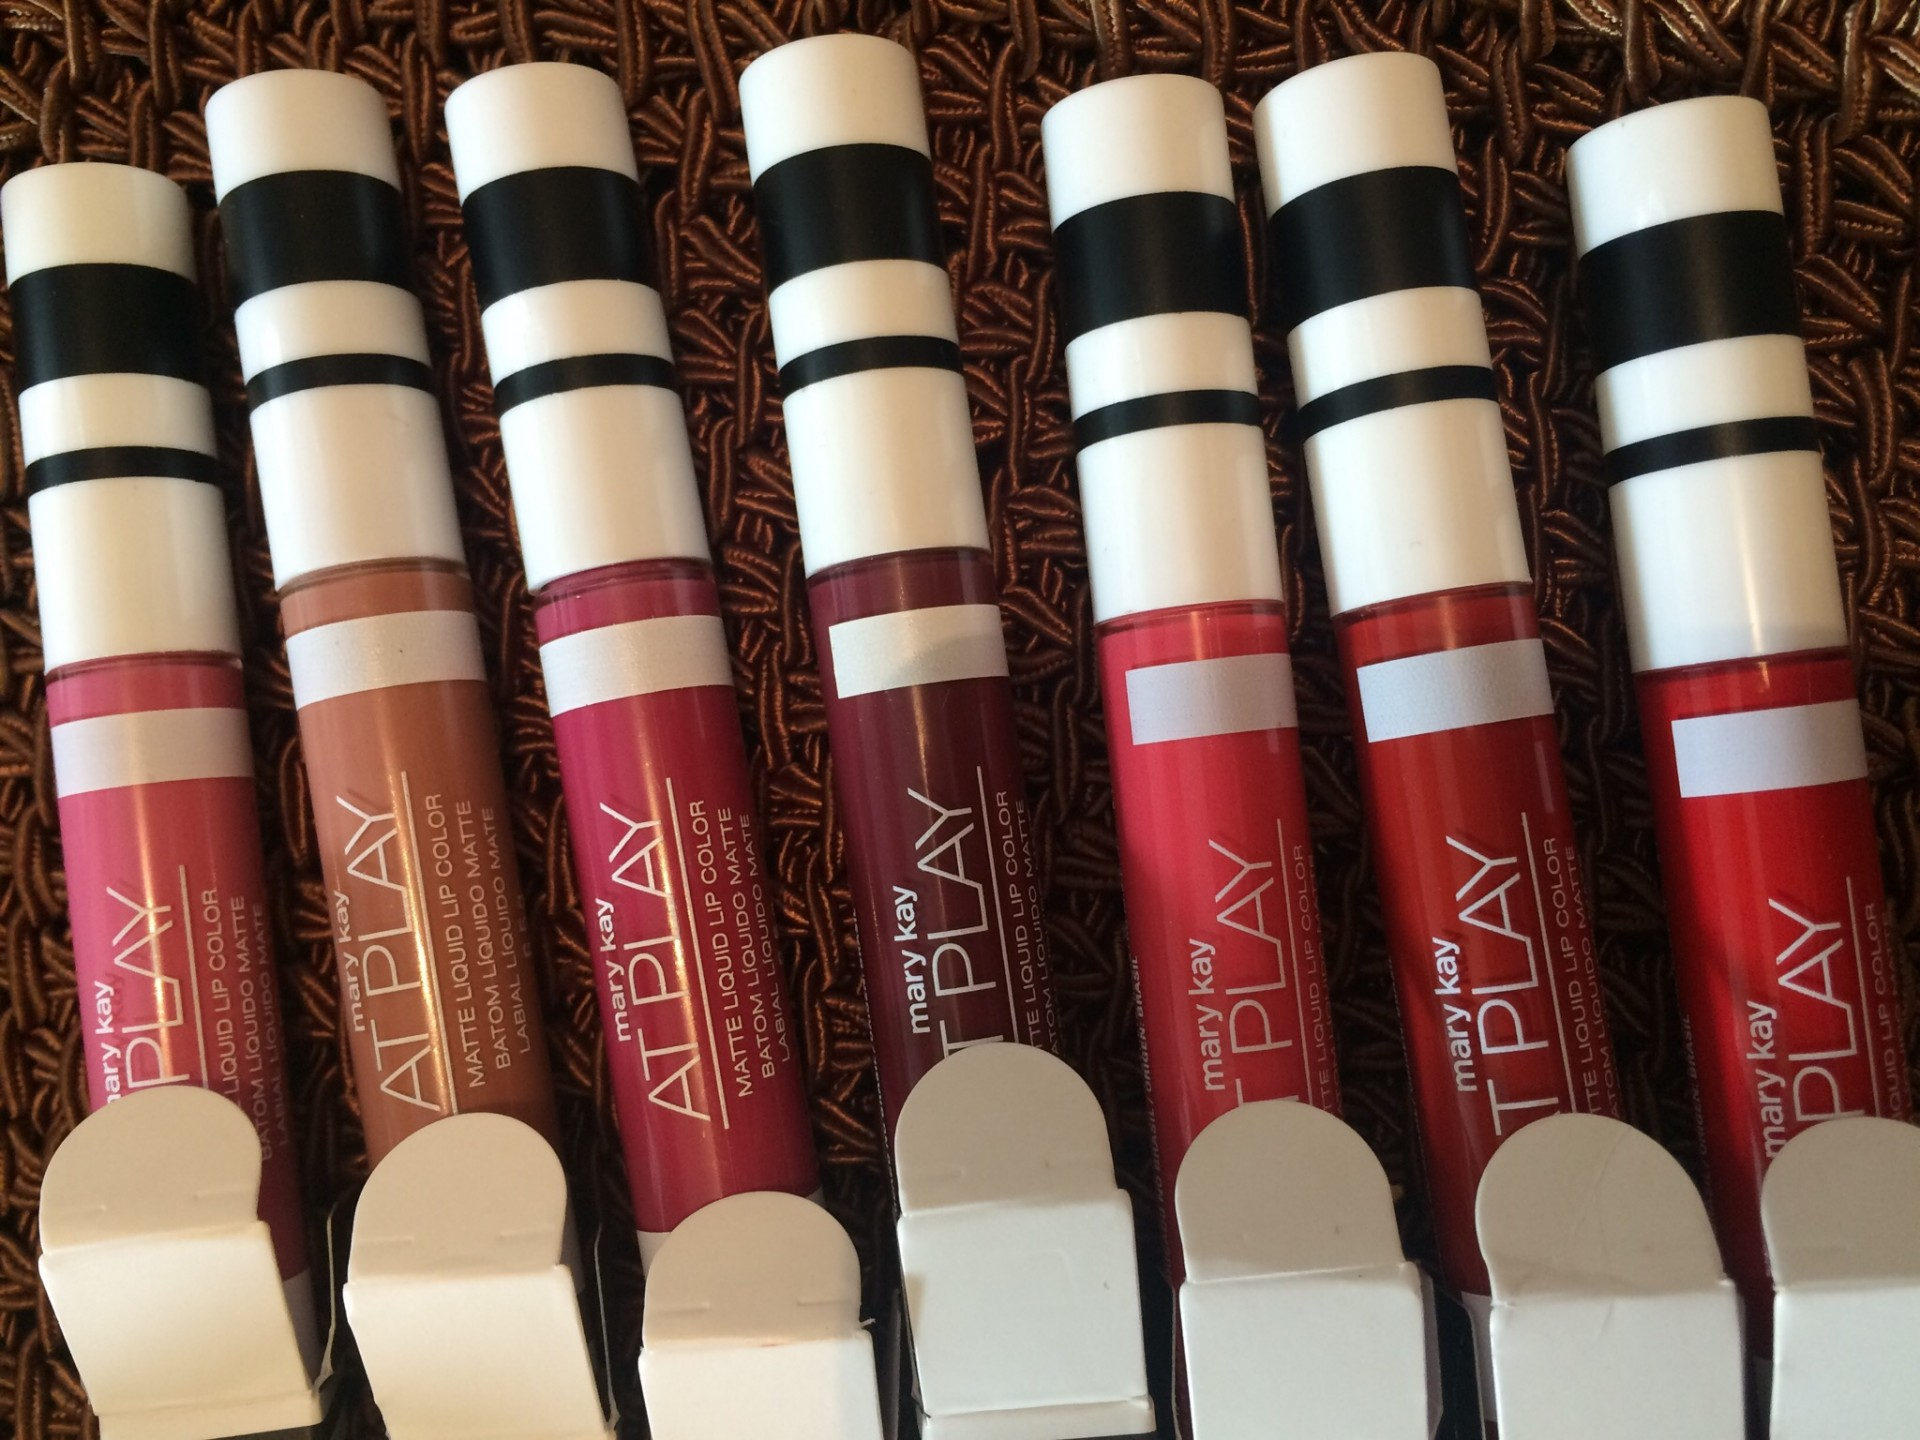 batom-mate-mary-kay-7-cores